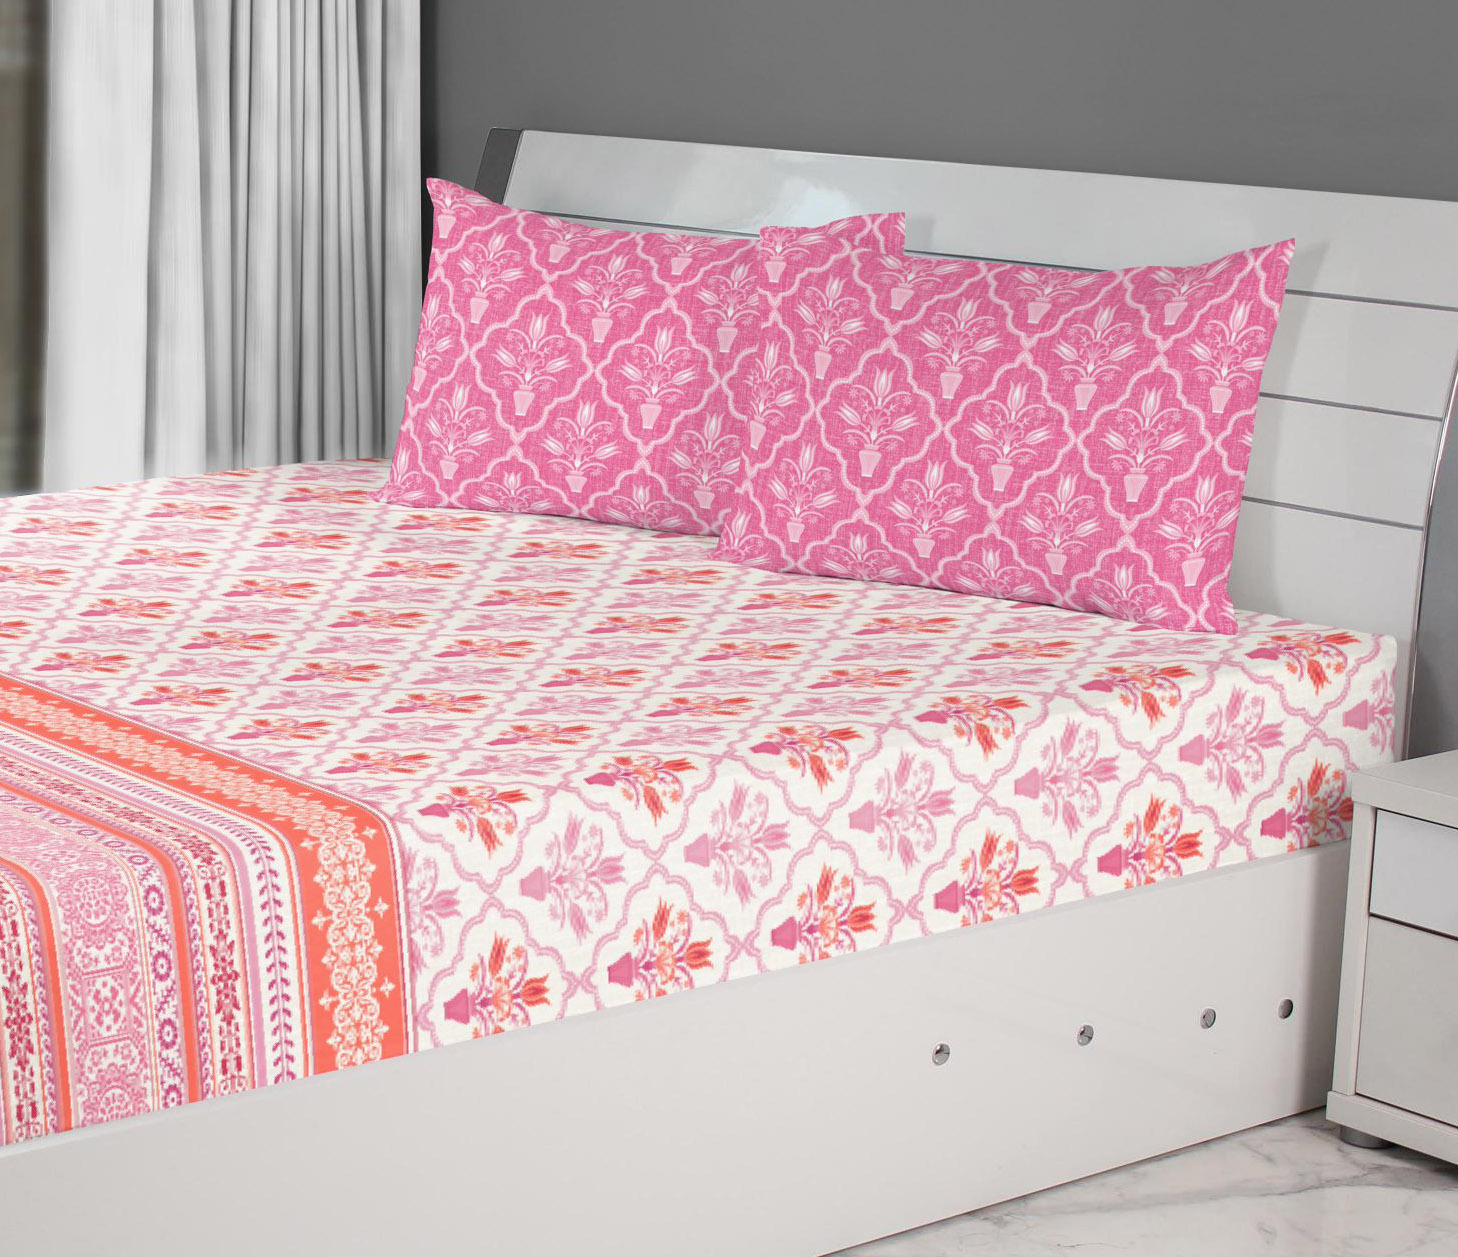 Emilia Cotton King Bedsheets in Rose Colour by Living Essence